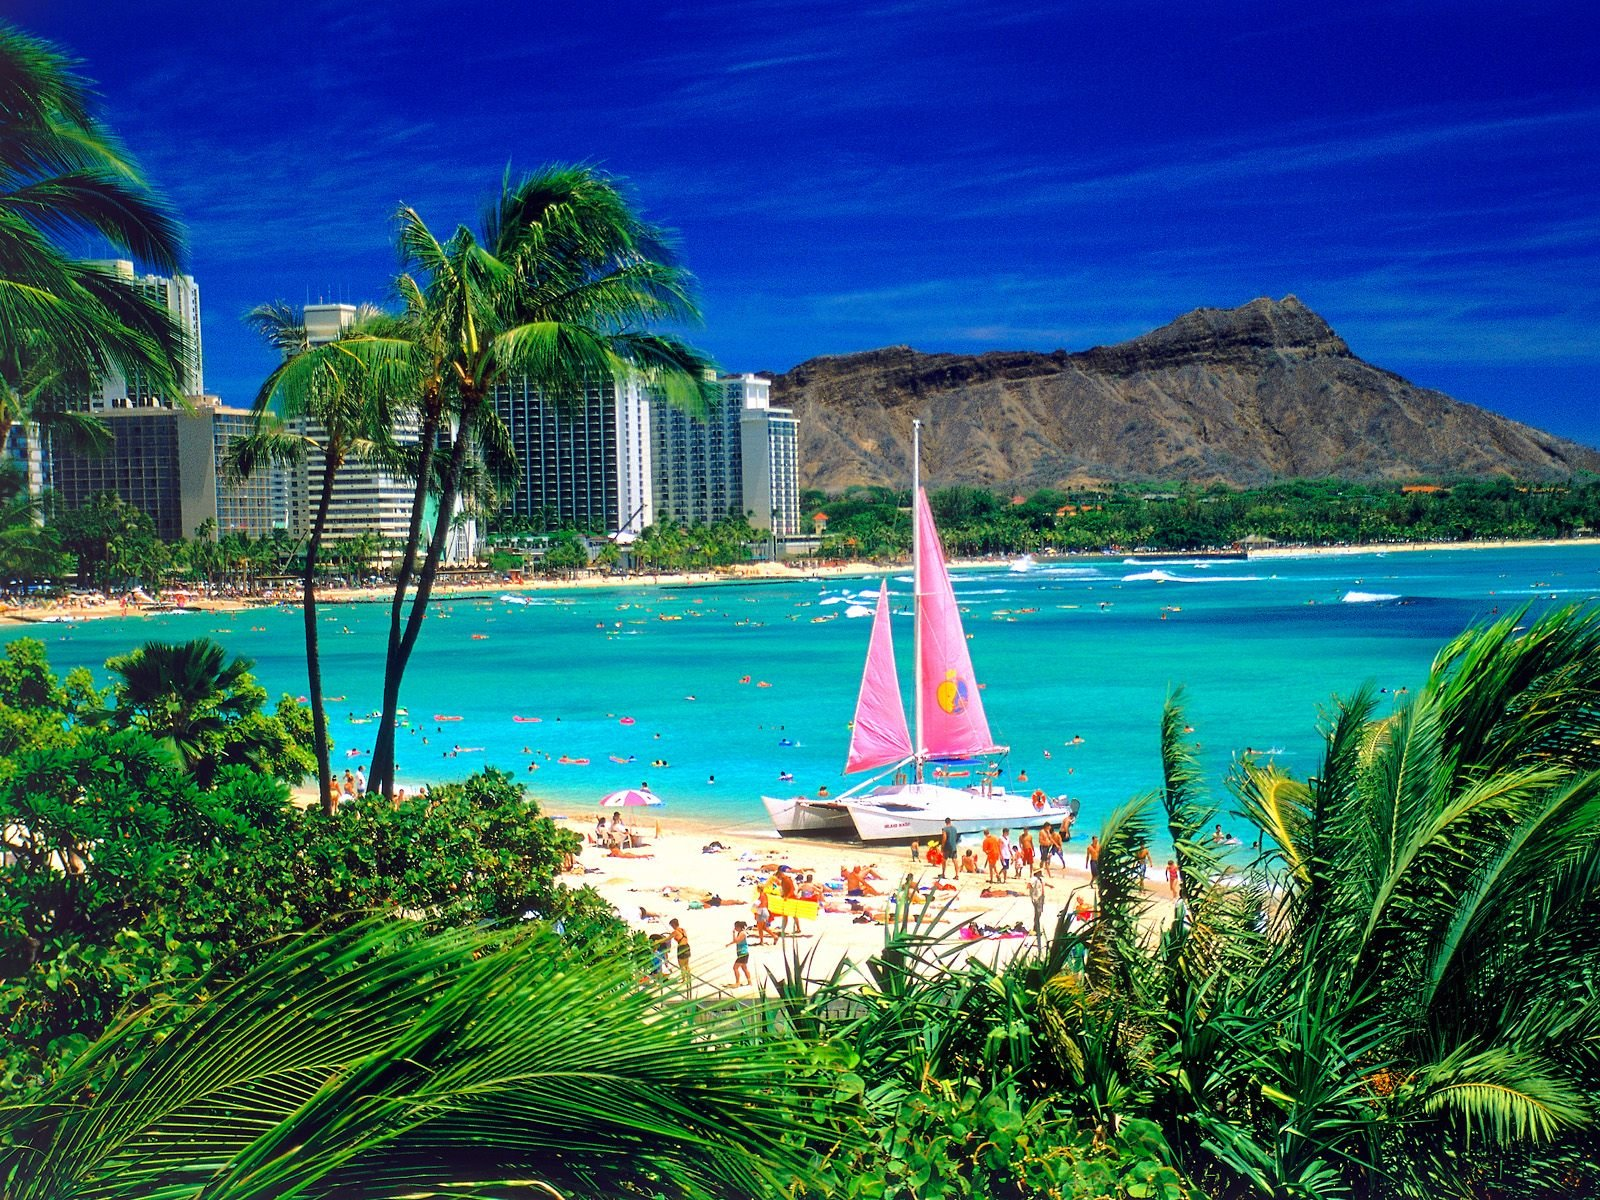 Waikiki Oahu Hawaii Wallpapers HD Wallpapers 1600x1200